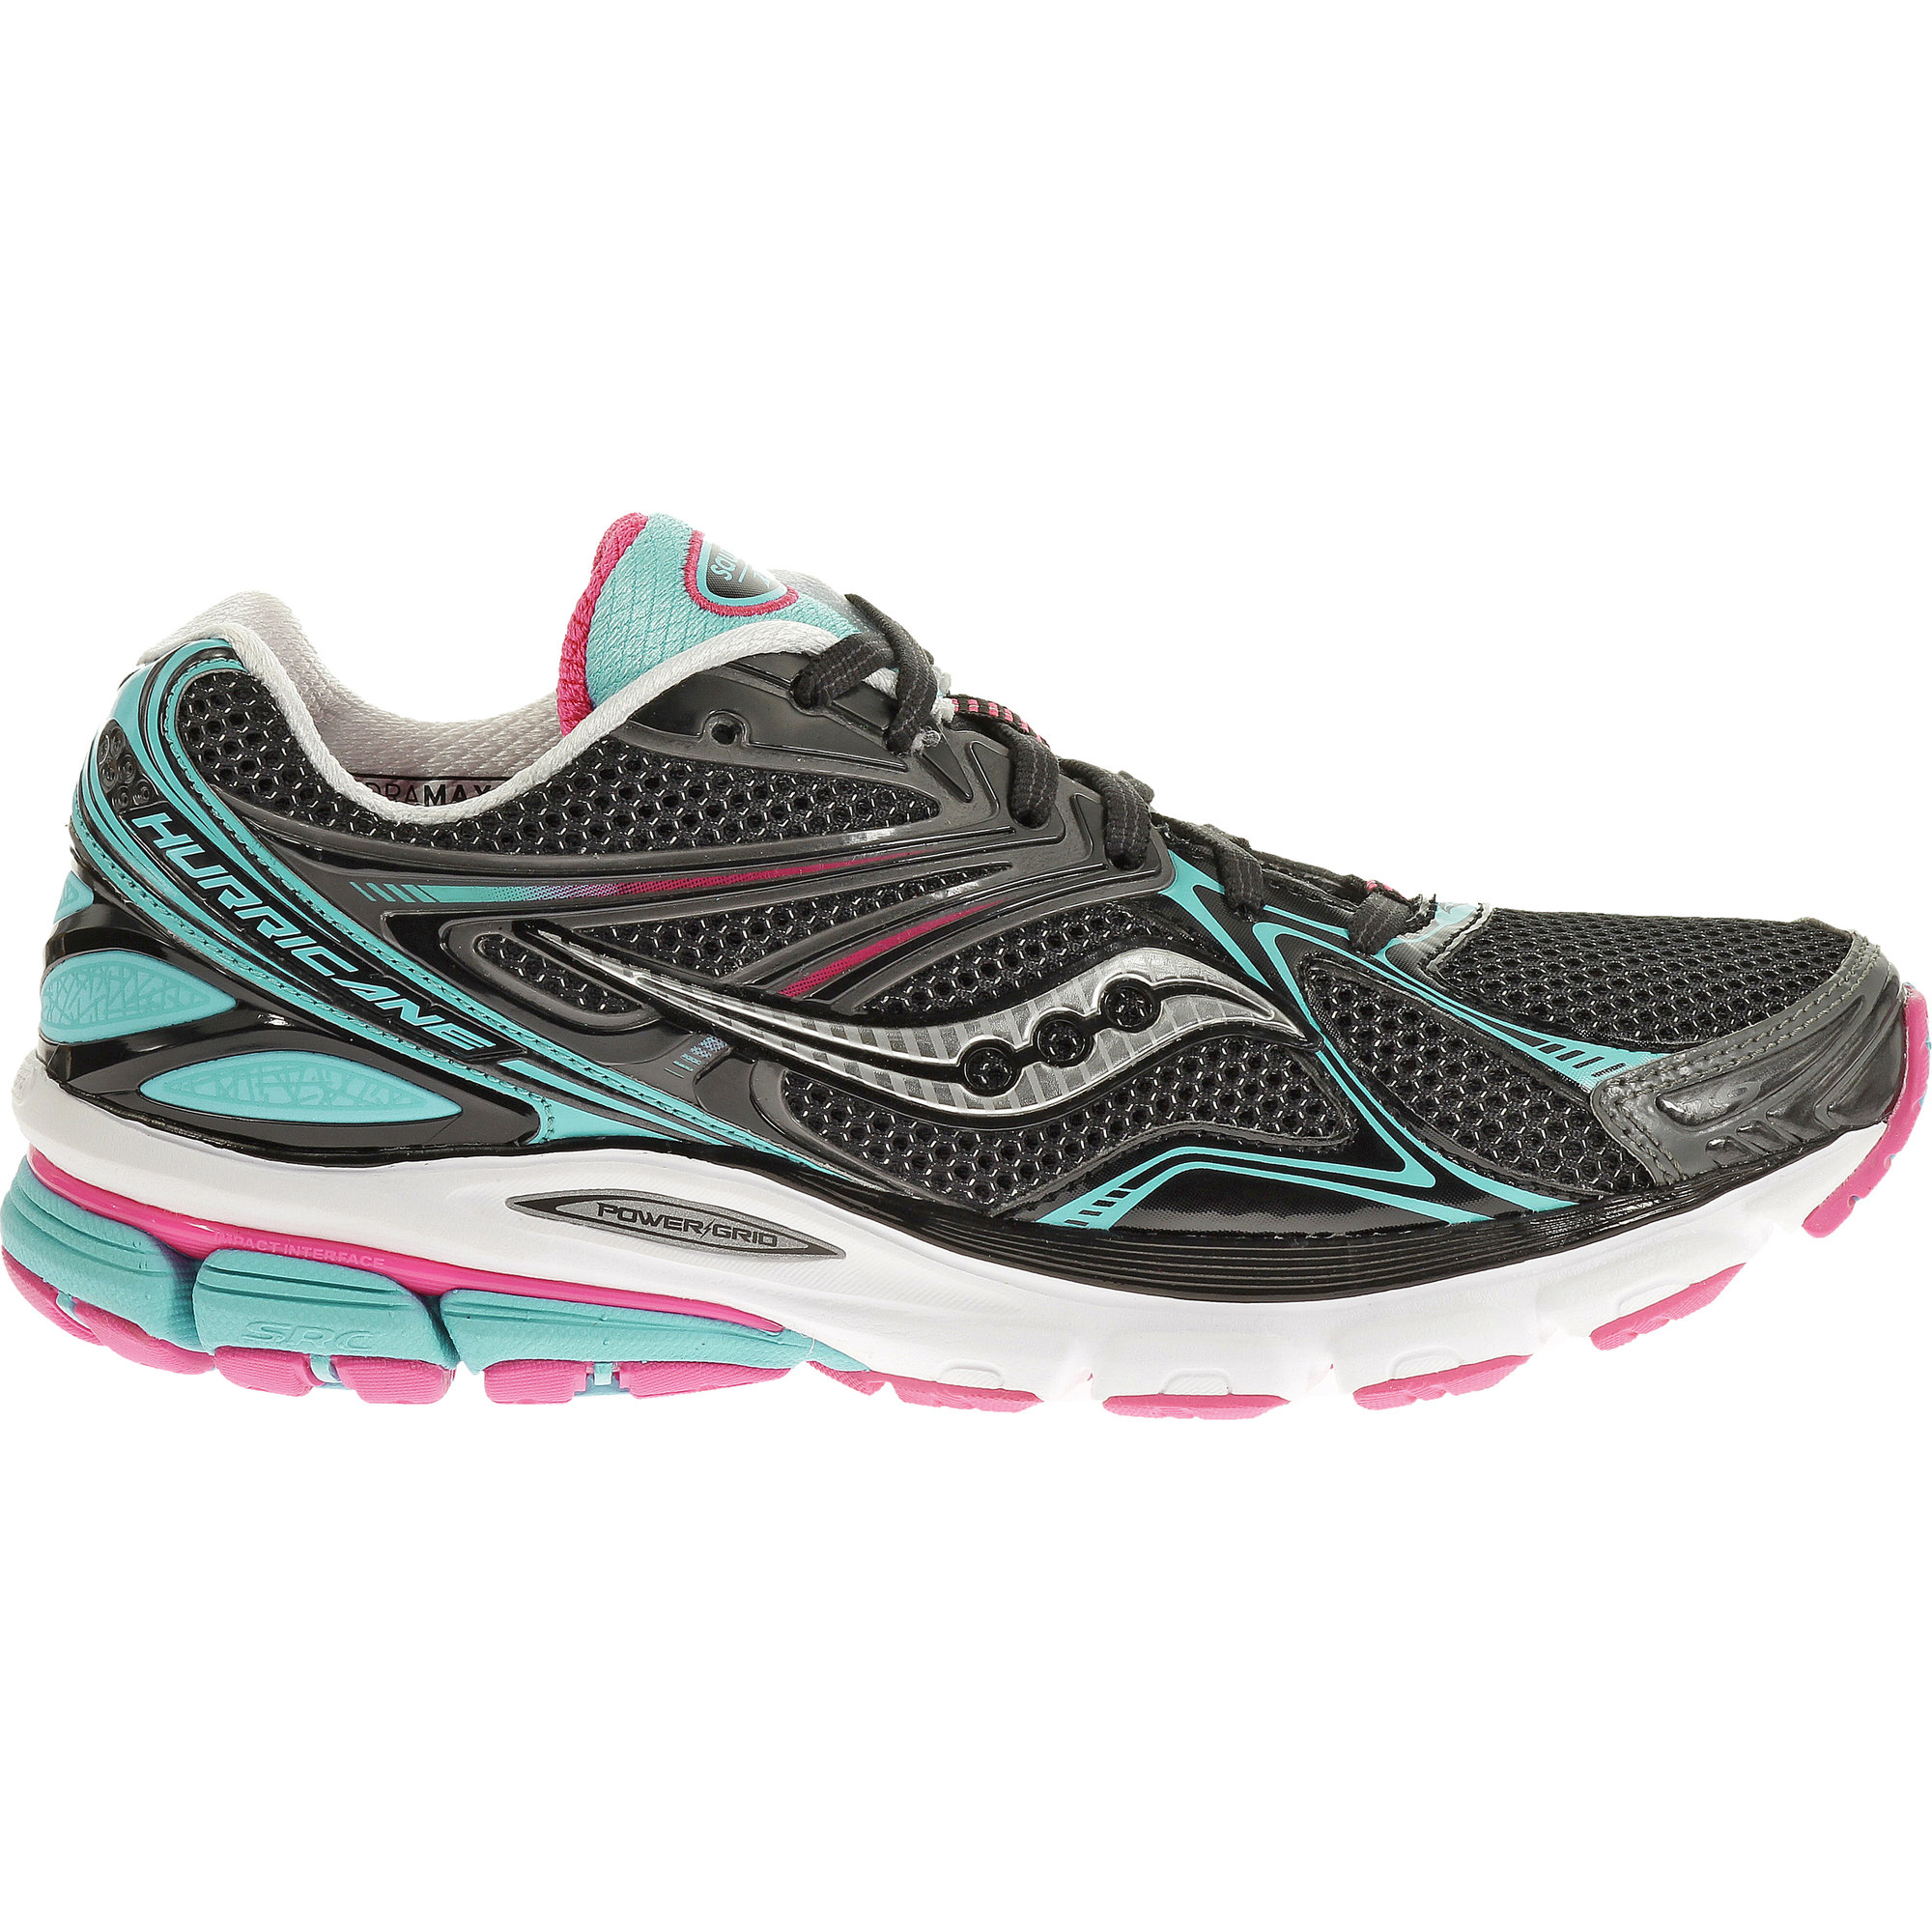 Saucony Lady Hurricane 16 in Black Blue Pink